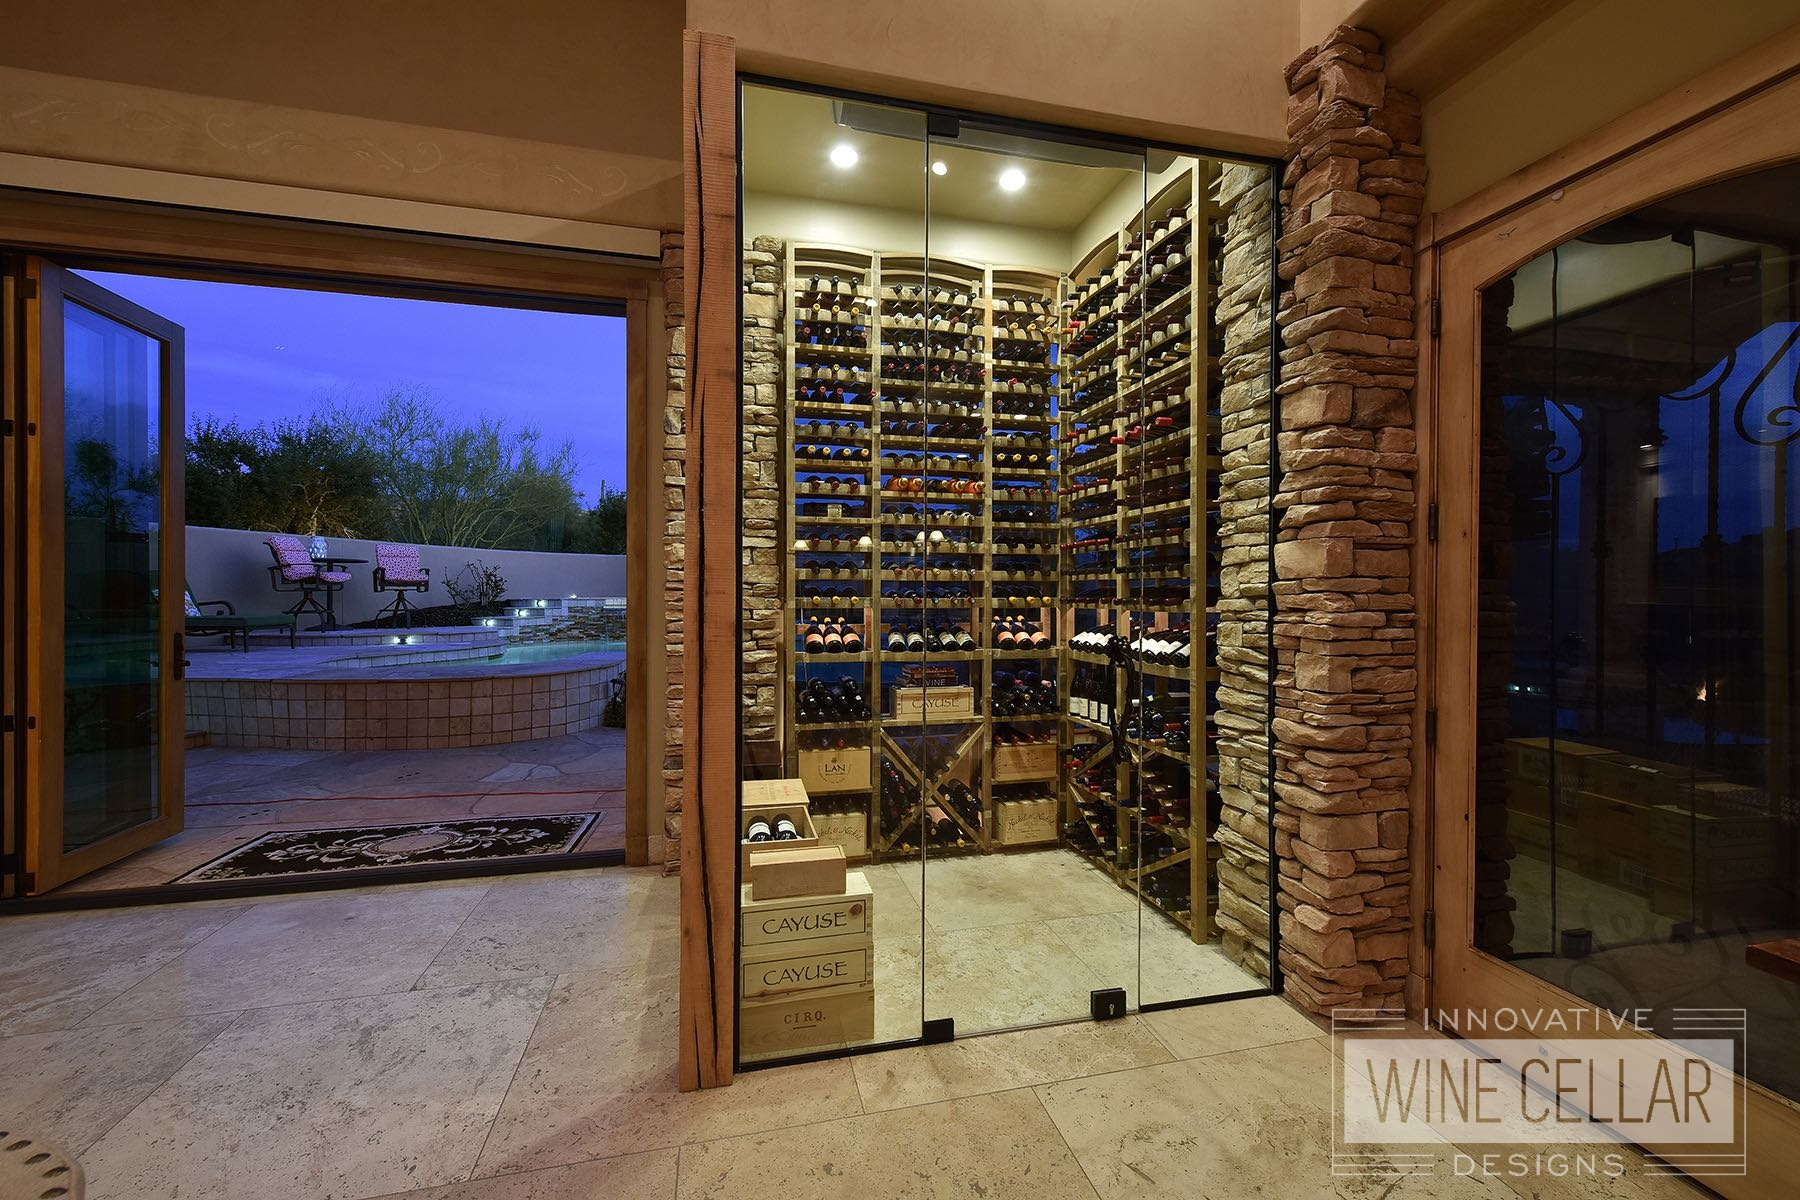 Mini Wine Cellar Ideas innovative wine cellar designs | custom design, build